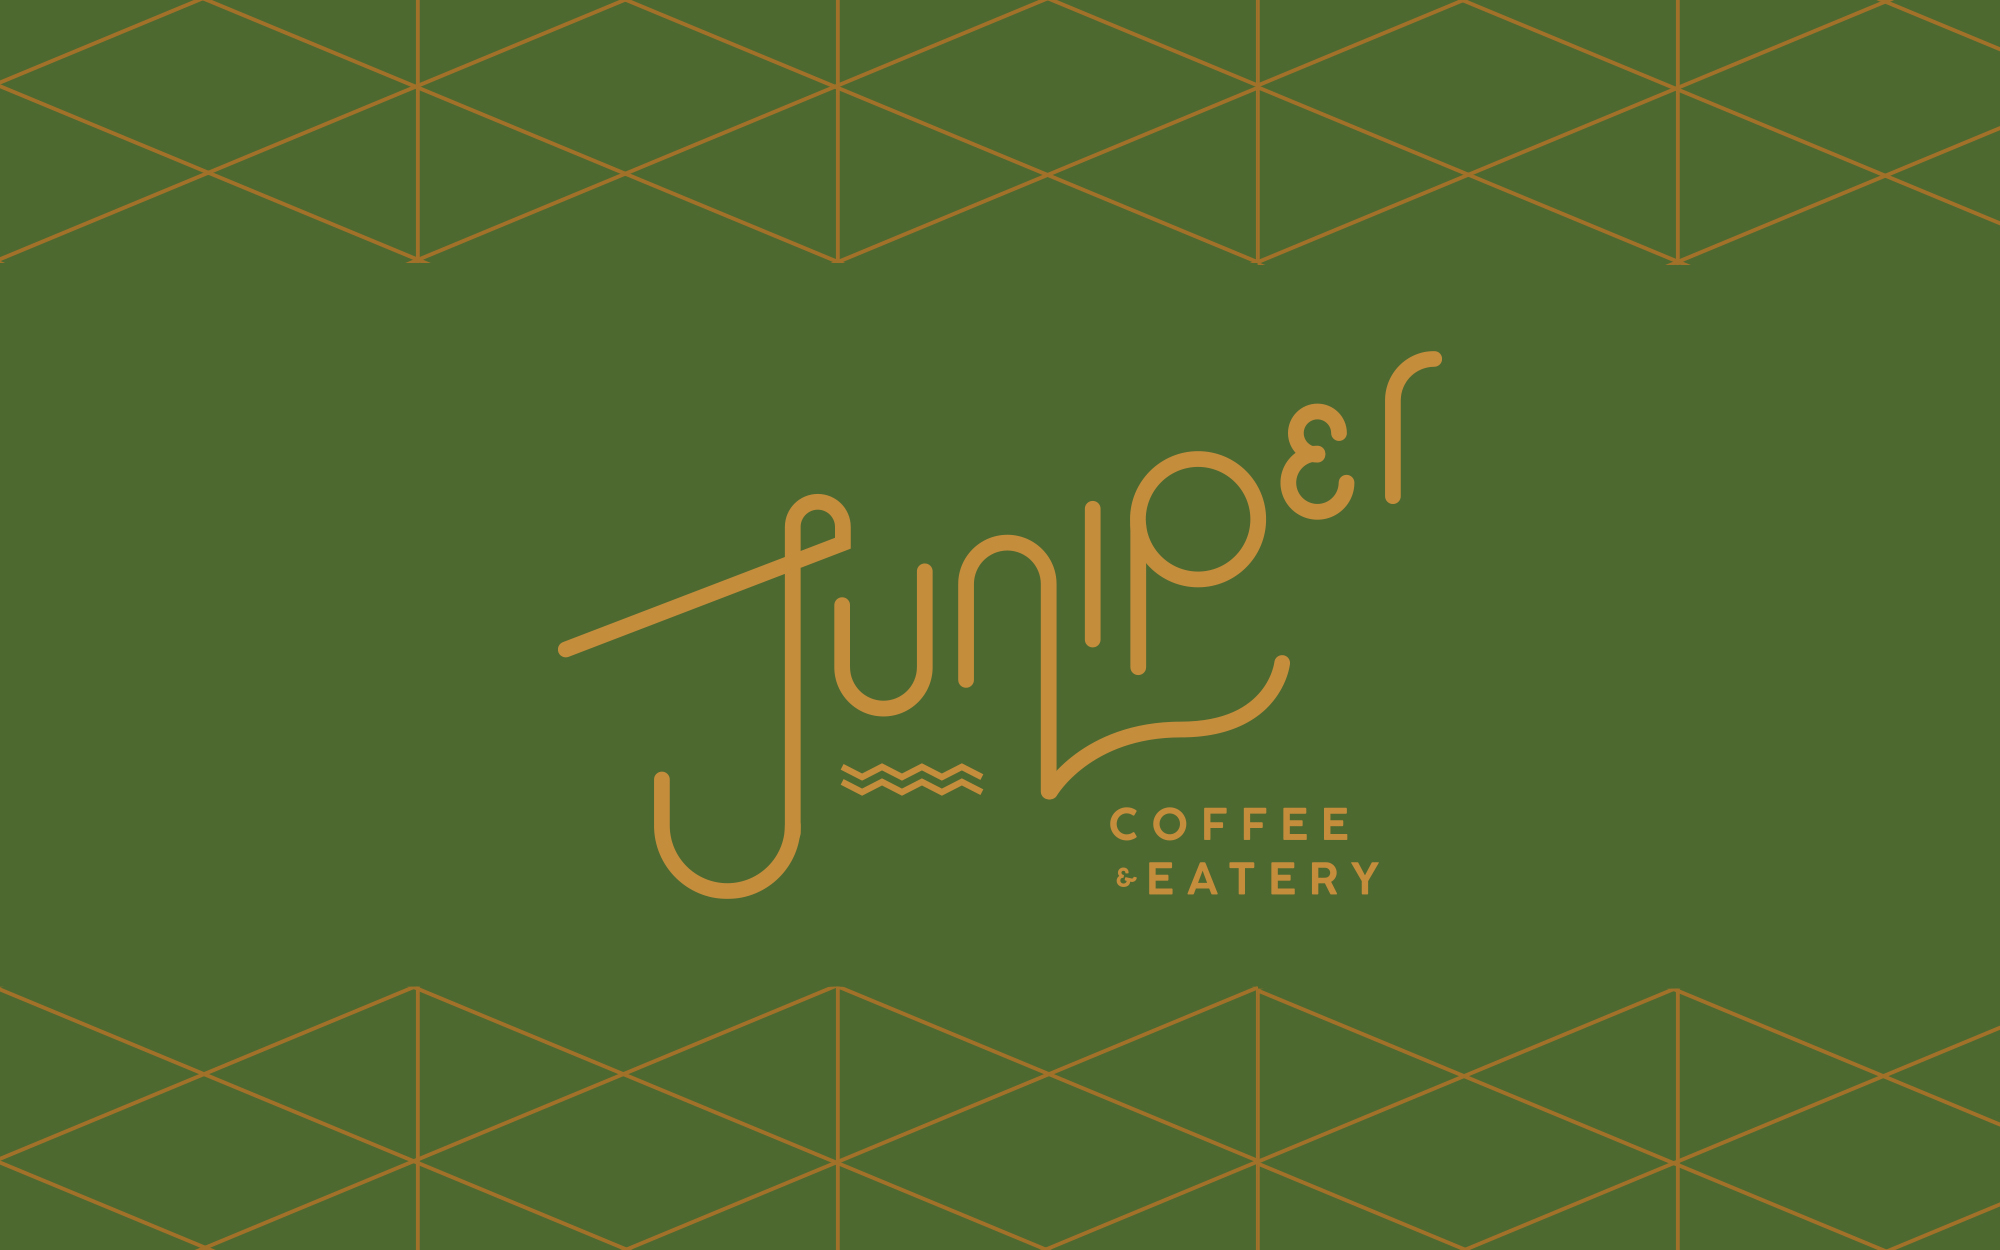 JuniperCoffee_2020_02